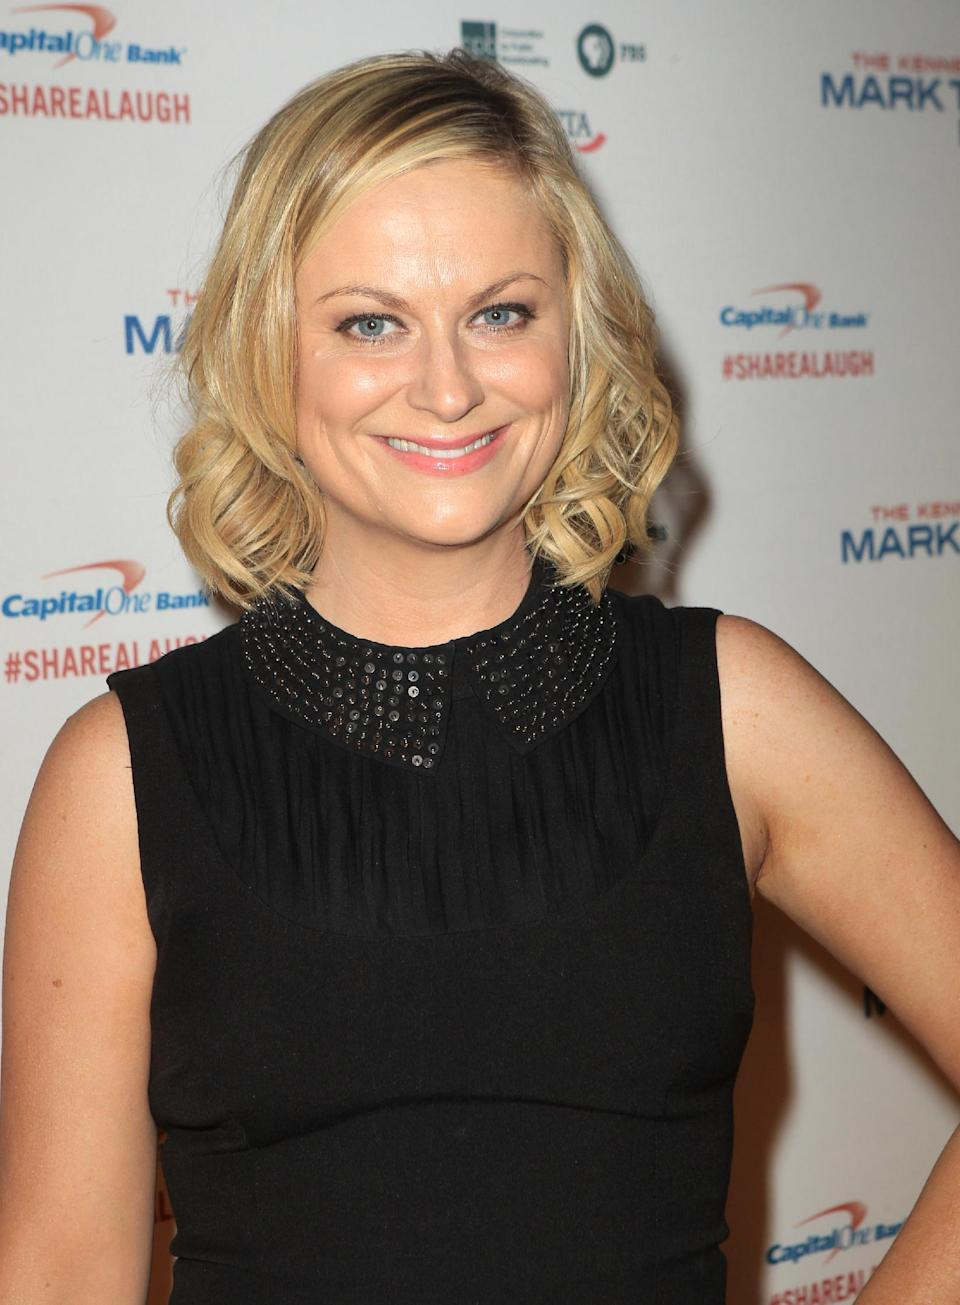 Amy Poehler arrives at 16th Annual Mark Twain Prize presented to Carol Burnett at the Kennedy Center on Sunday, Oct. 20, 2013 in Washington, D.C. (Photo by Owen Sweeney/Invision/AP)